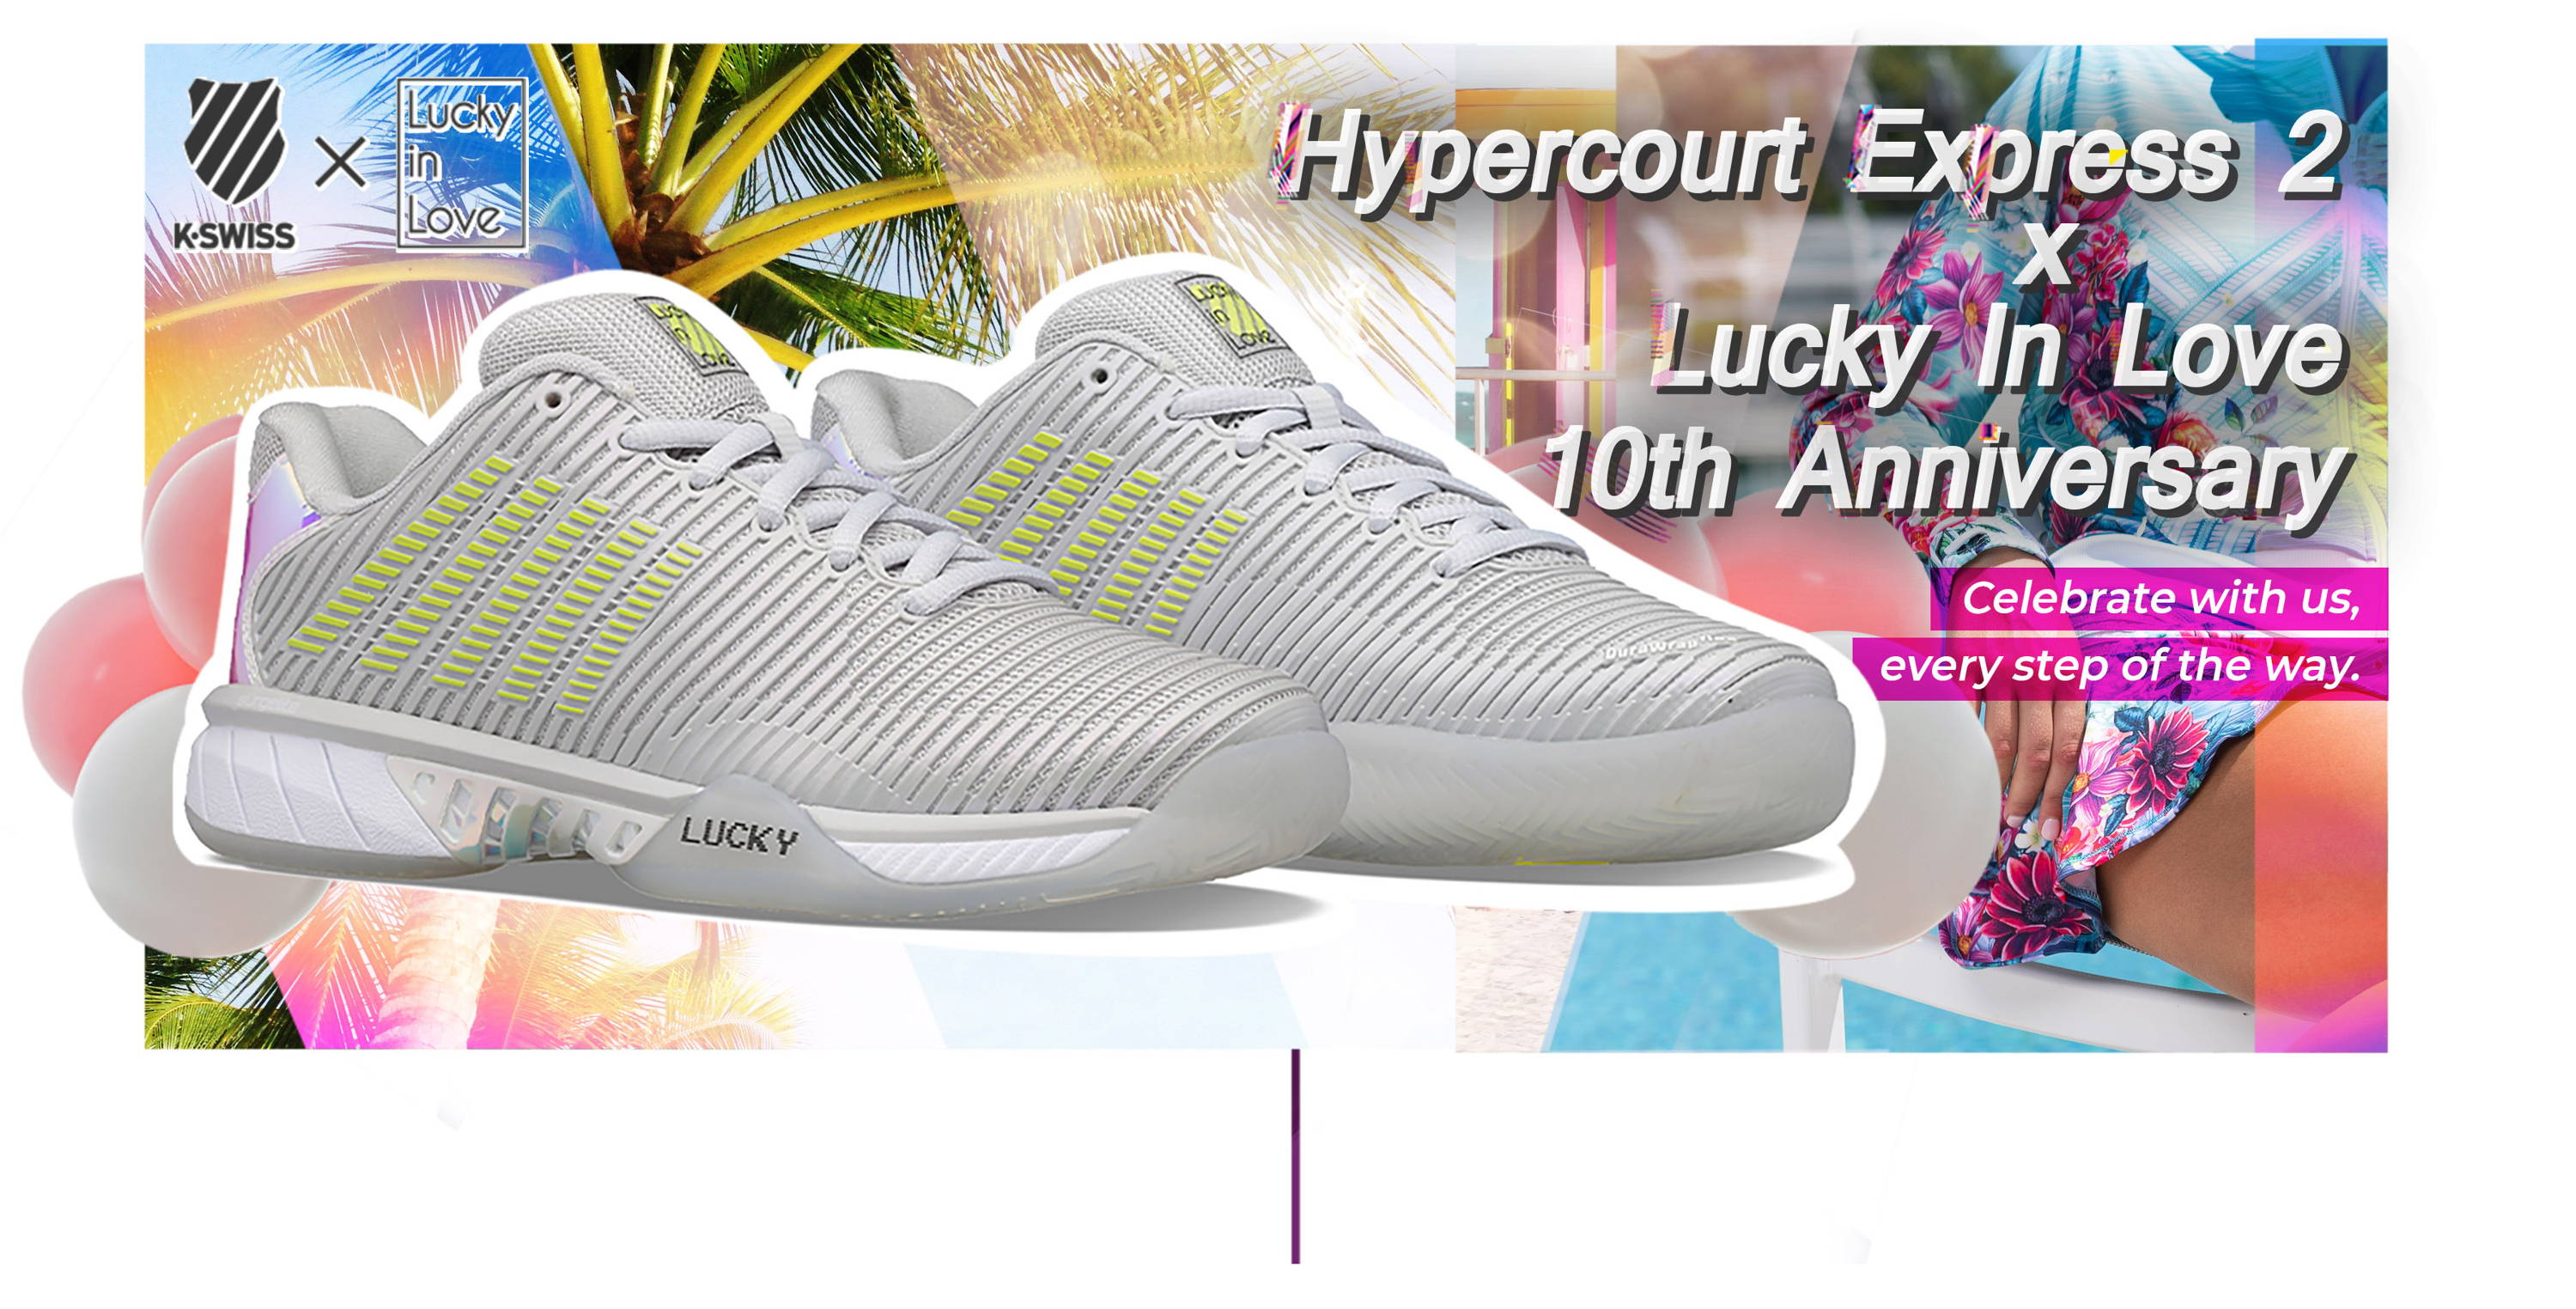 HYPERCOURT EXPRESS 2 X LUCKY IN LOVE 10TH ANNIVERSARY. celebrate with us, every step of the way.